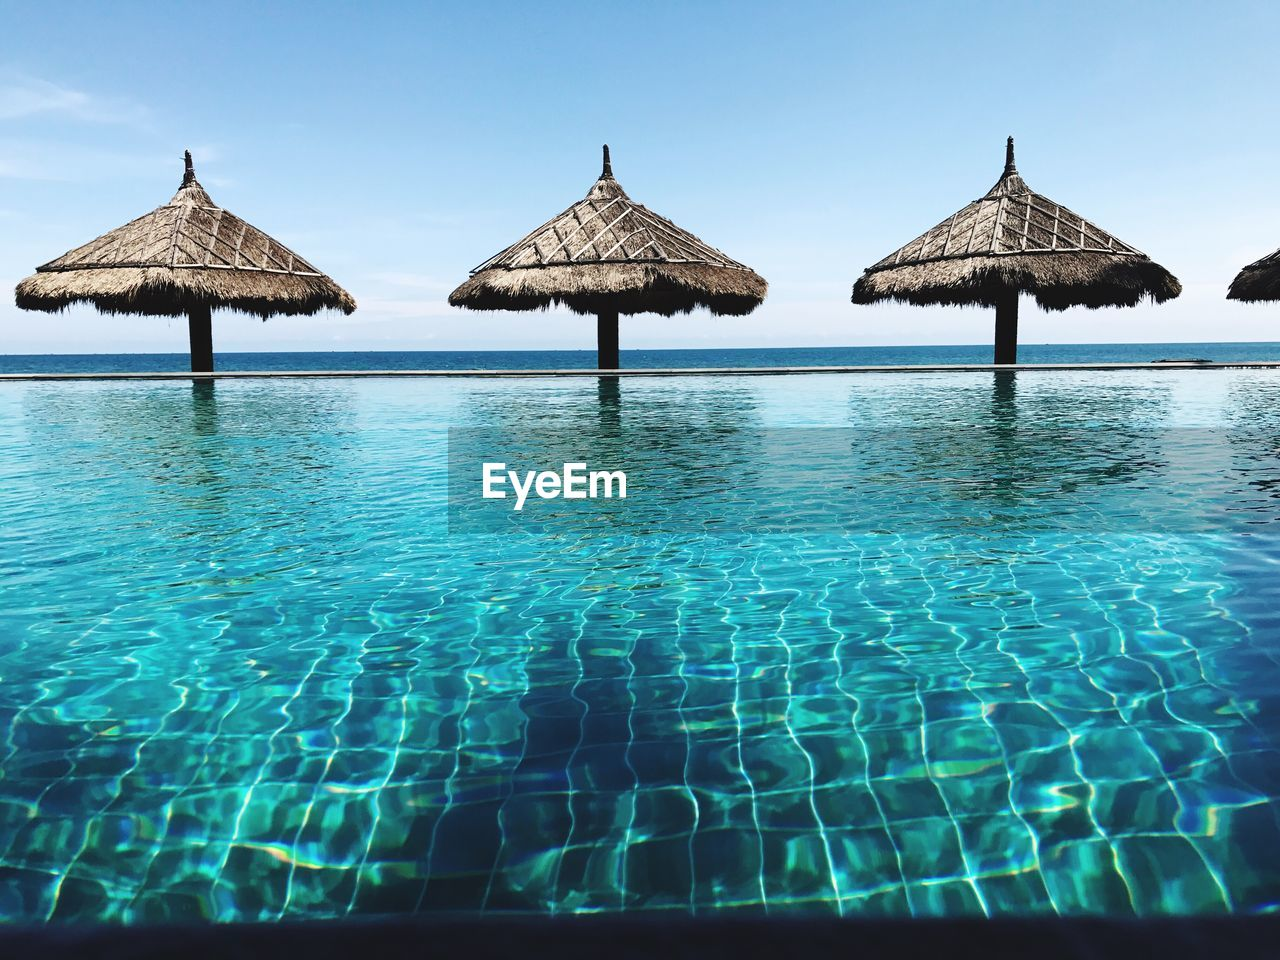 water, blue, swimming pool, sky, roof, pool, nature, thatched roof, clear sky, sea, beauty in nature, day, parasol, outdoors, tourist resort, holiday, relaxation, sunlight, waterfront, no people, turquoise colored